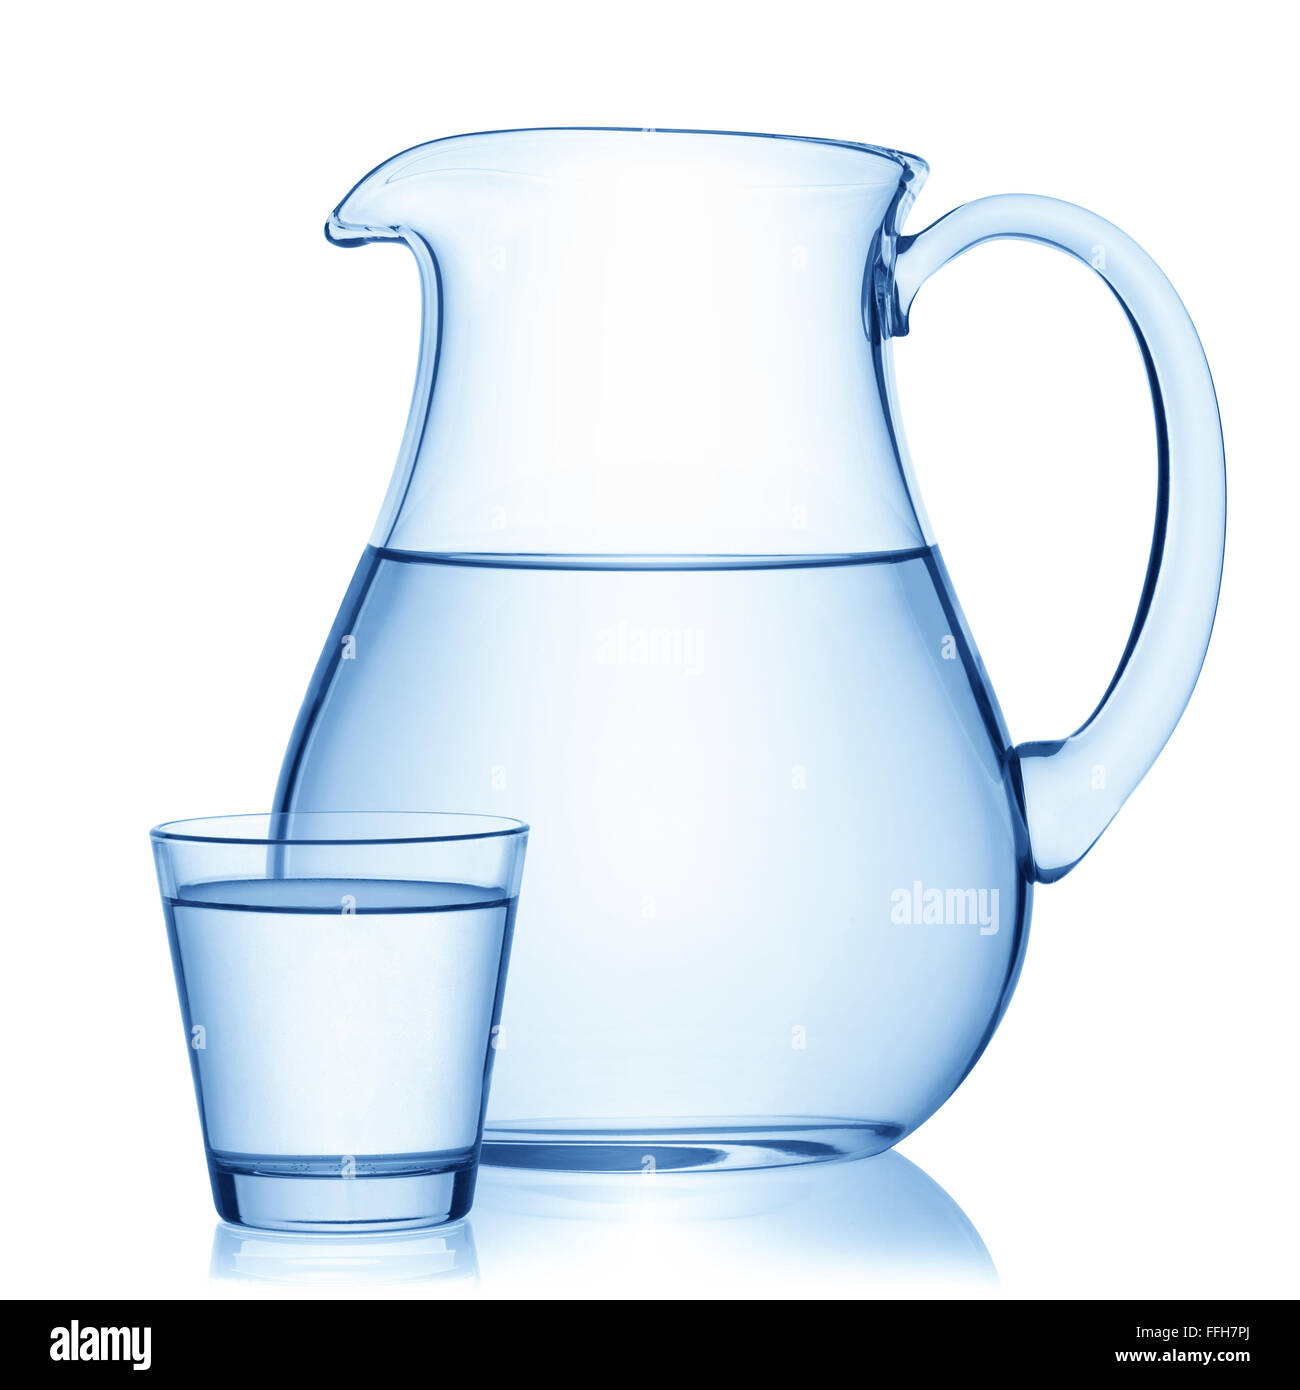 Pitcher and a glass of water, isolated on the white background, clipping path included. - Stock Image